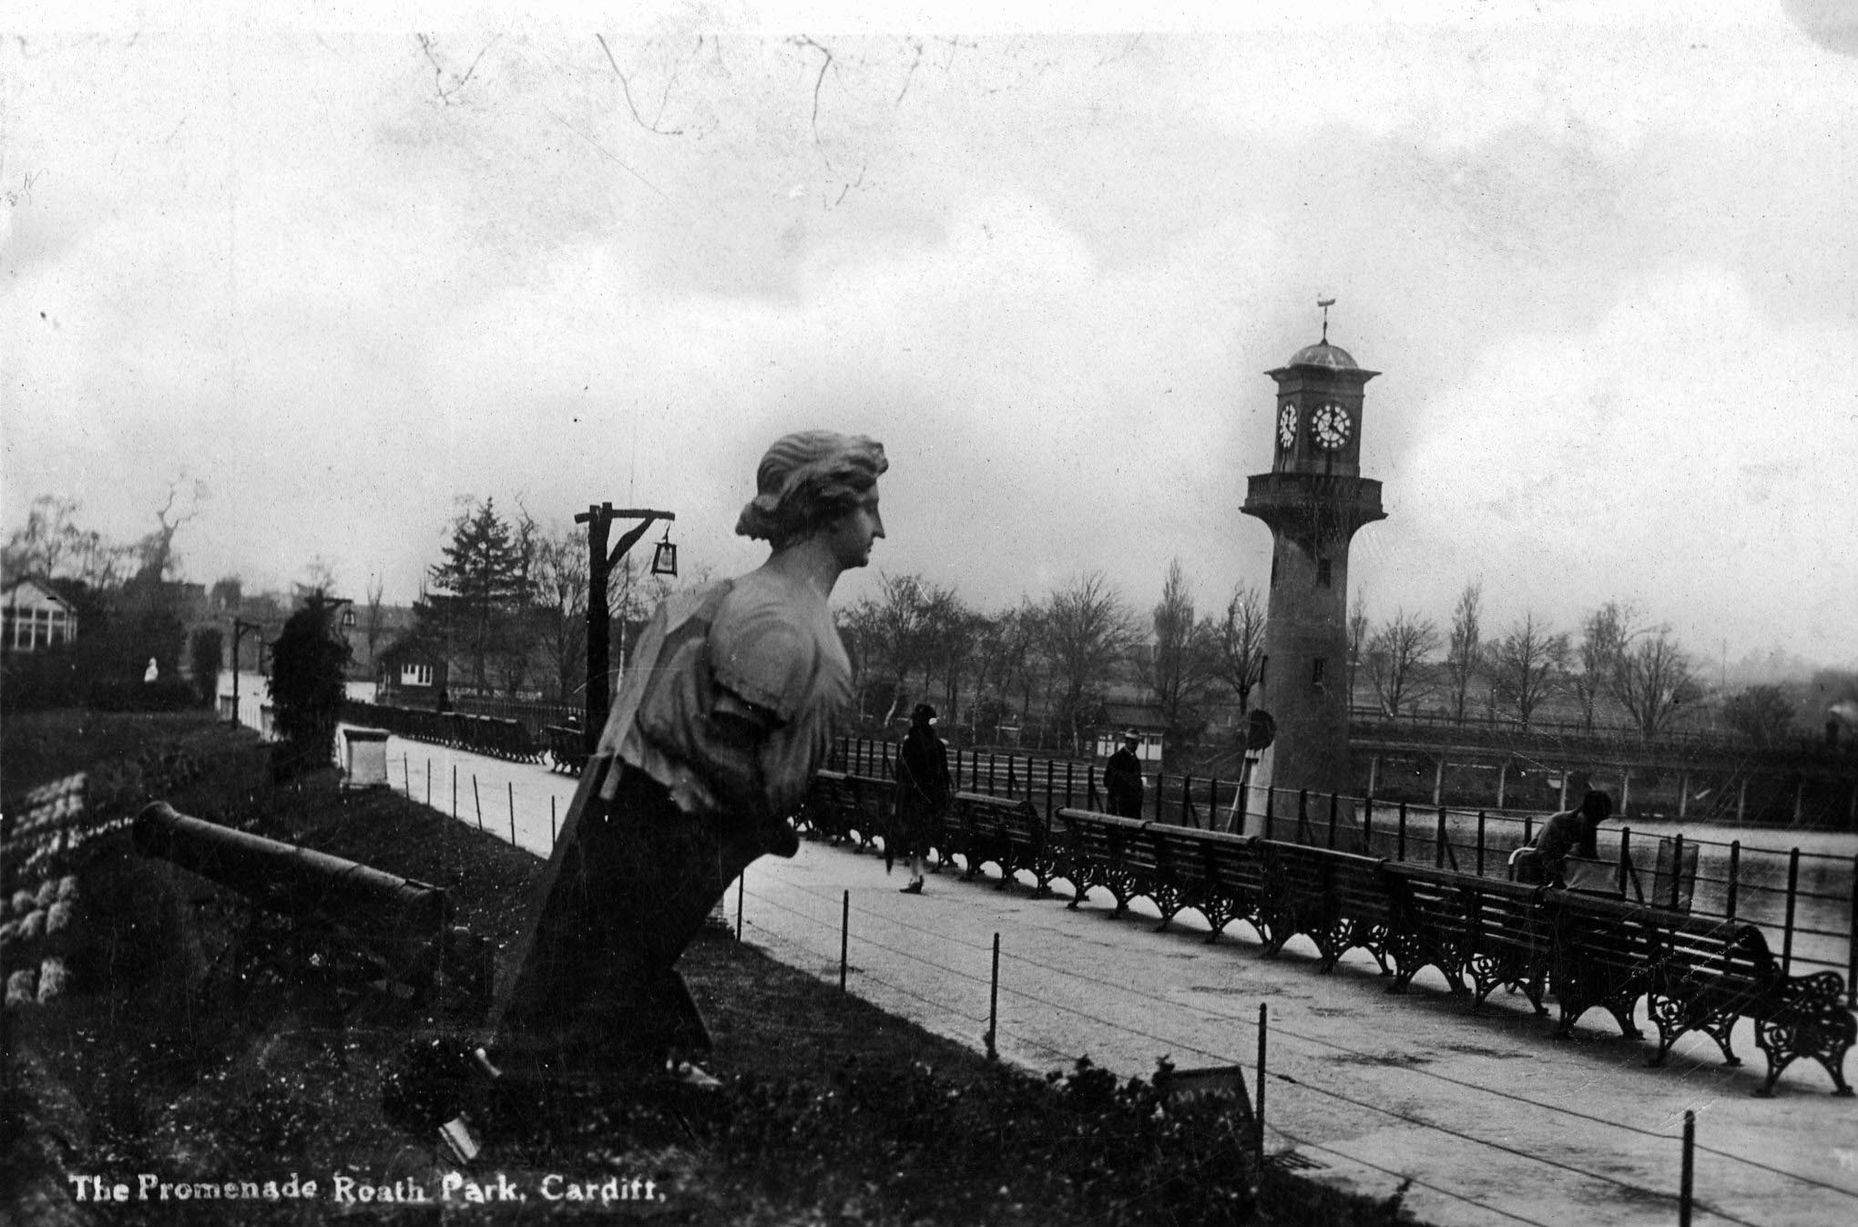 After World War I, two German guns were placed at Roath Park, but were removed shortly afterwards due to complaints from the public. You can see one of them on the left of the photograph.